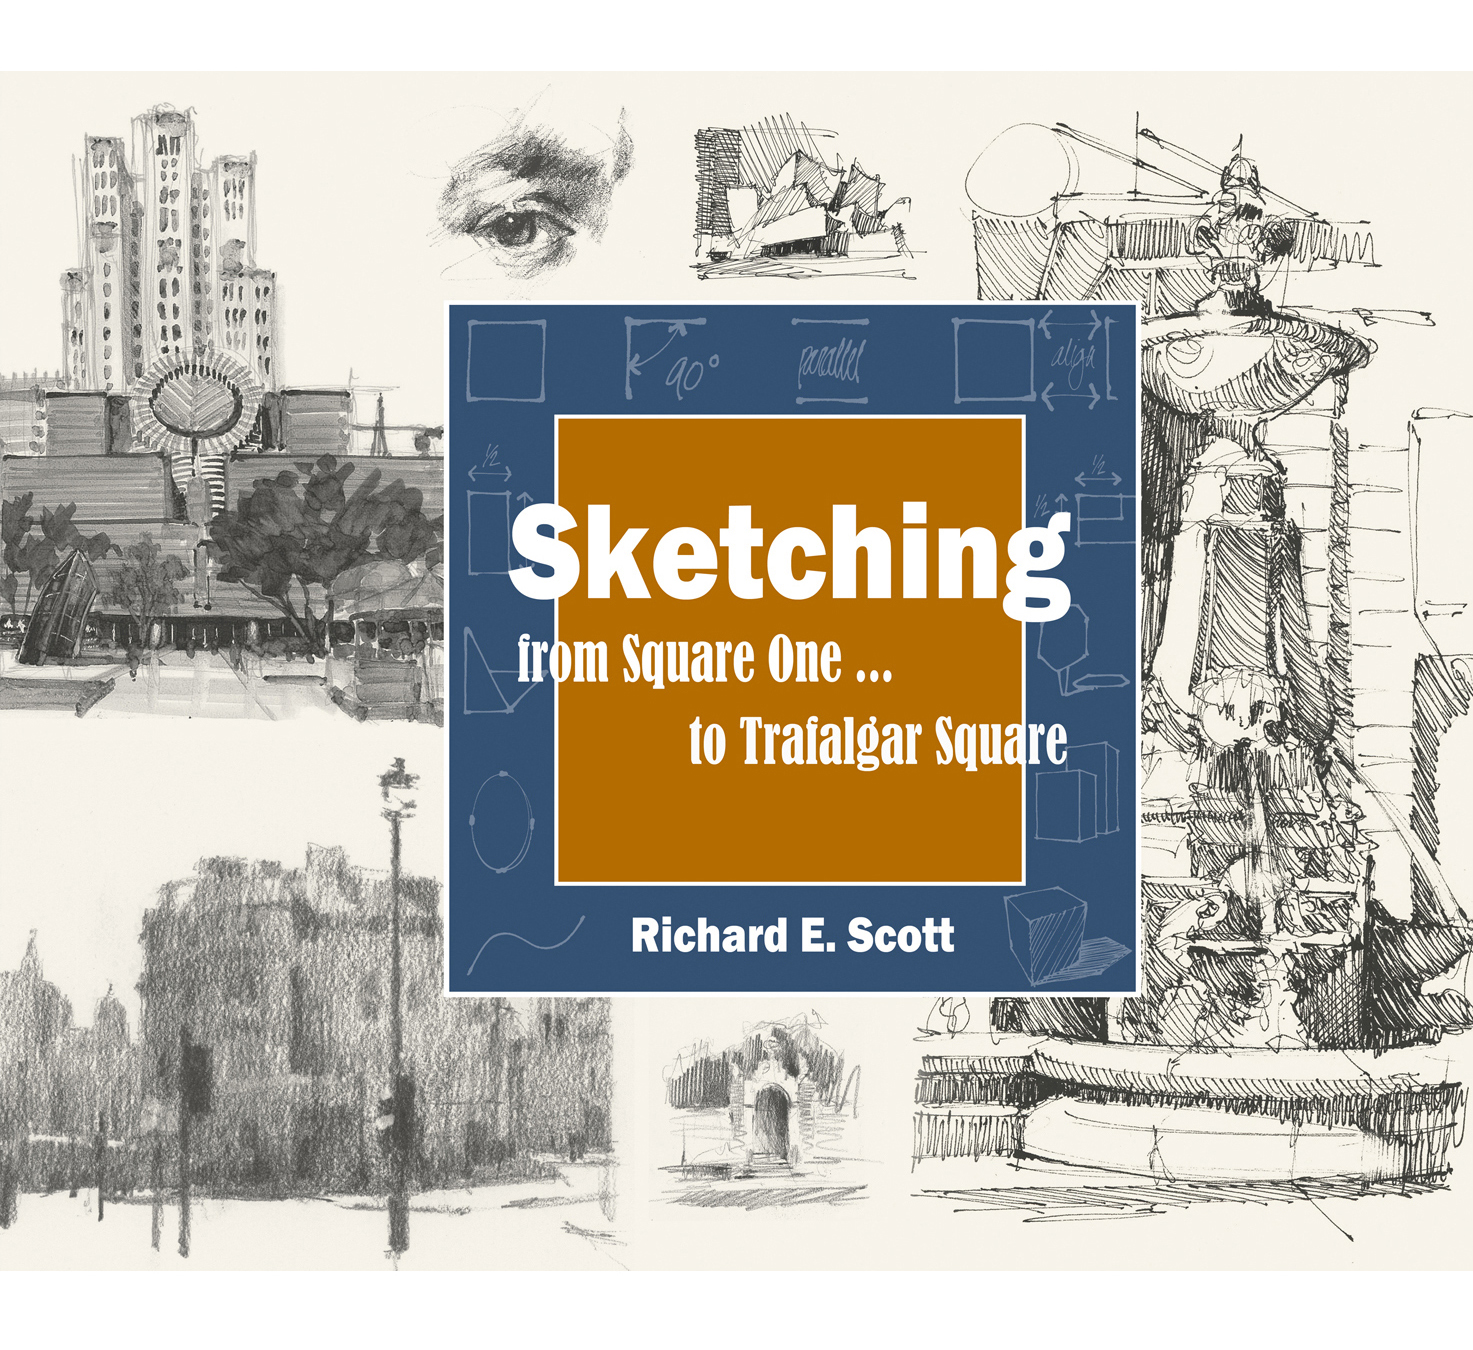 The Book:Sketching - from Square One ... to Trafalgar Square